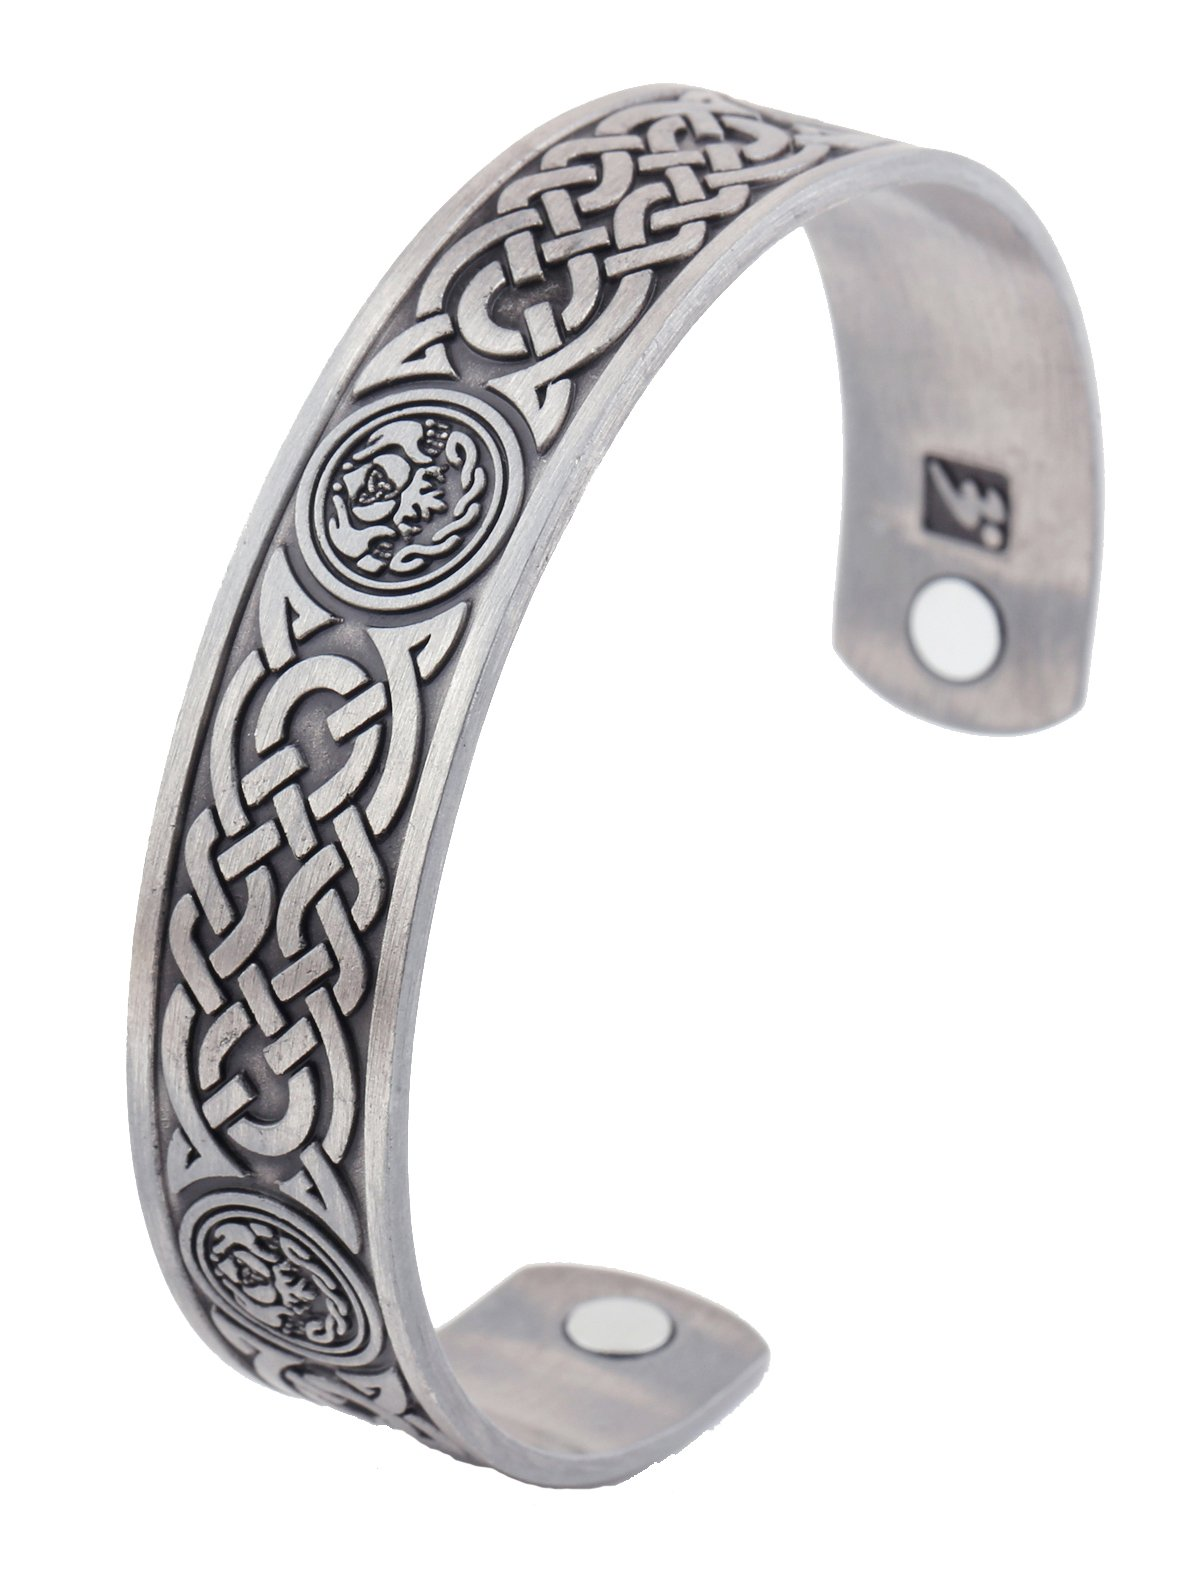 Magnetic Therapy Bracelet Irish Totem Celtic Knot Health Care Wicca Bangle (Antique Silver)